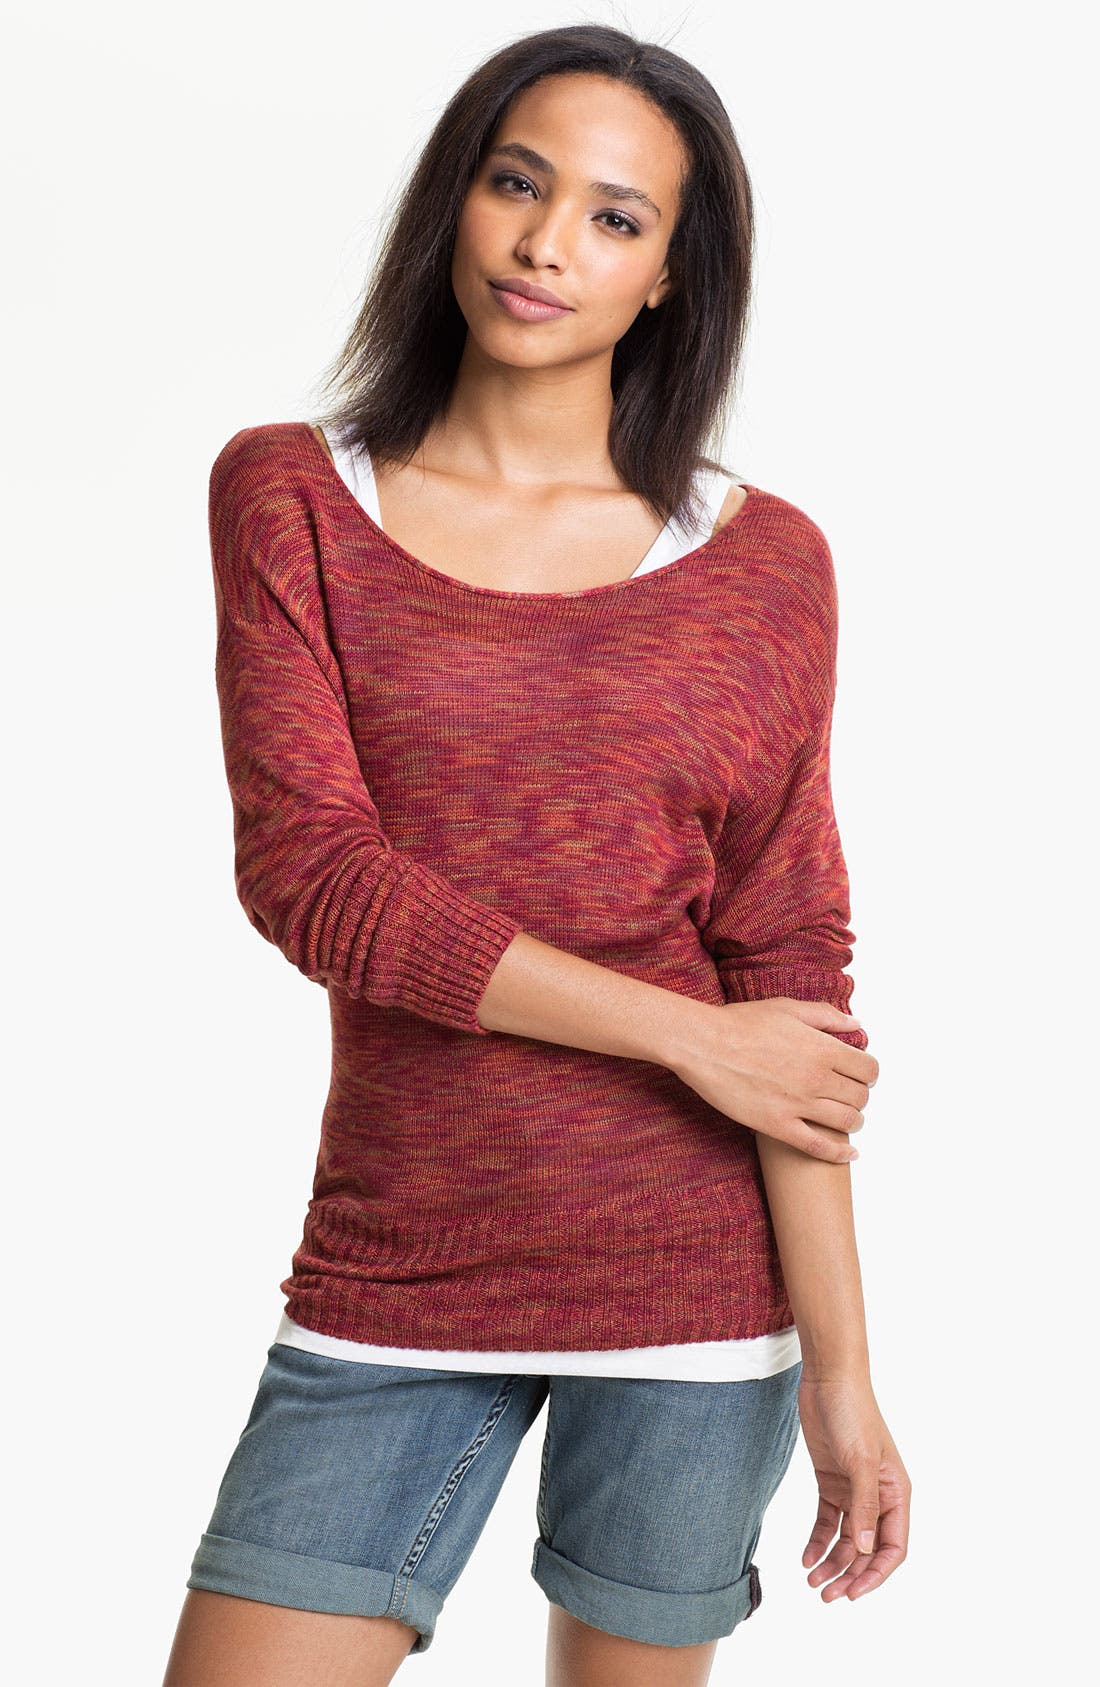 Alternate Image 1 Selected - Lucky Brand 'Sparrow' Sweater (Online Exclusive)